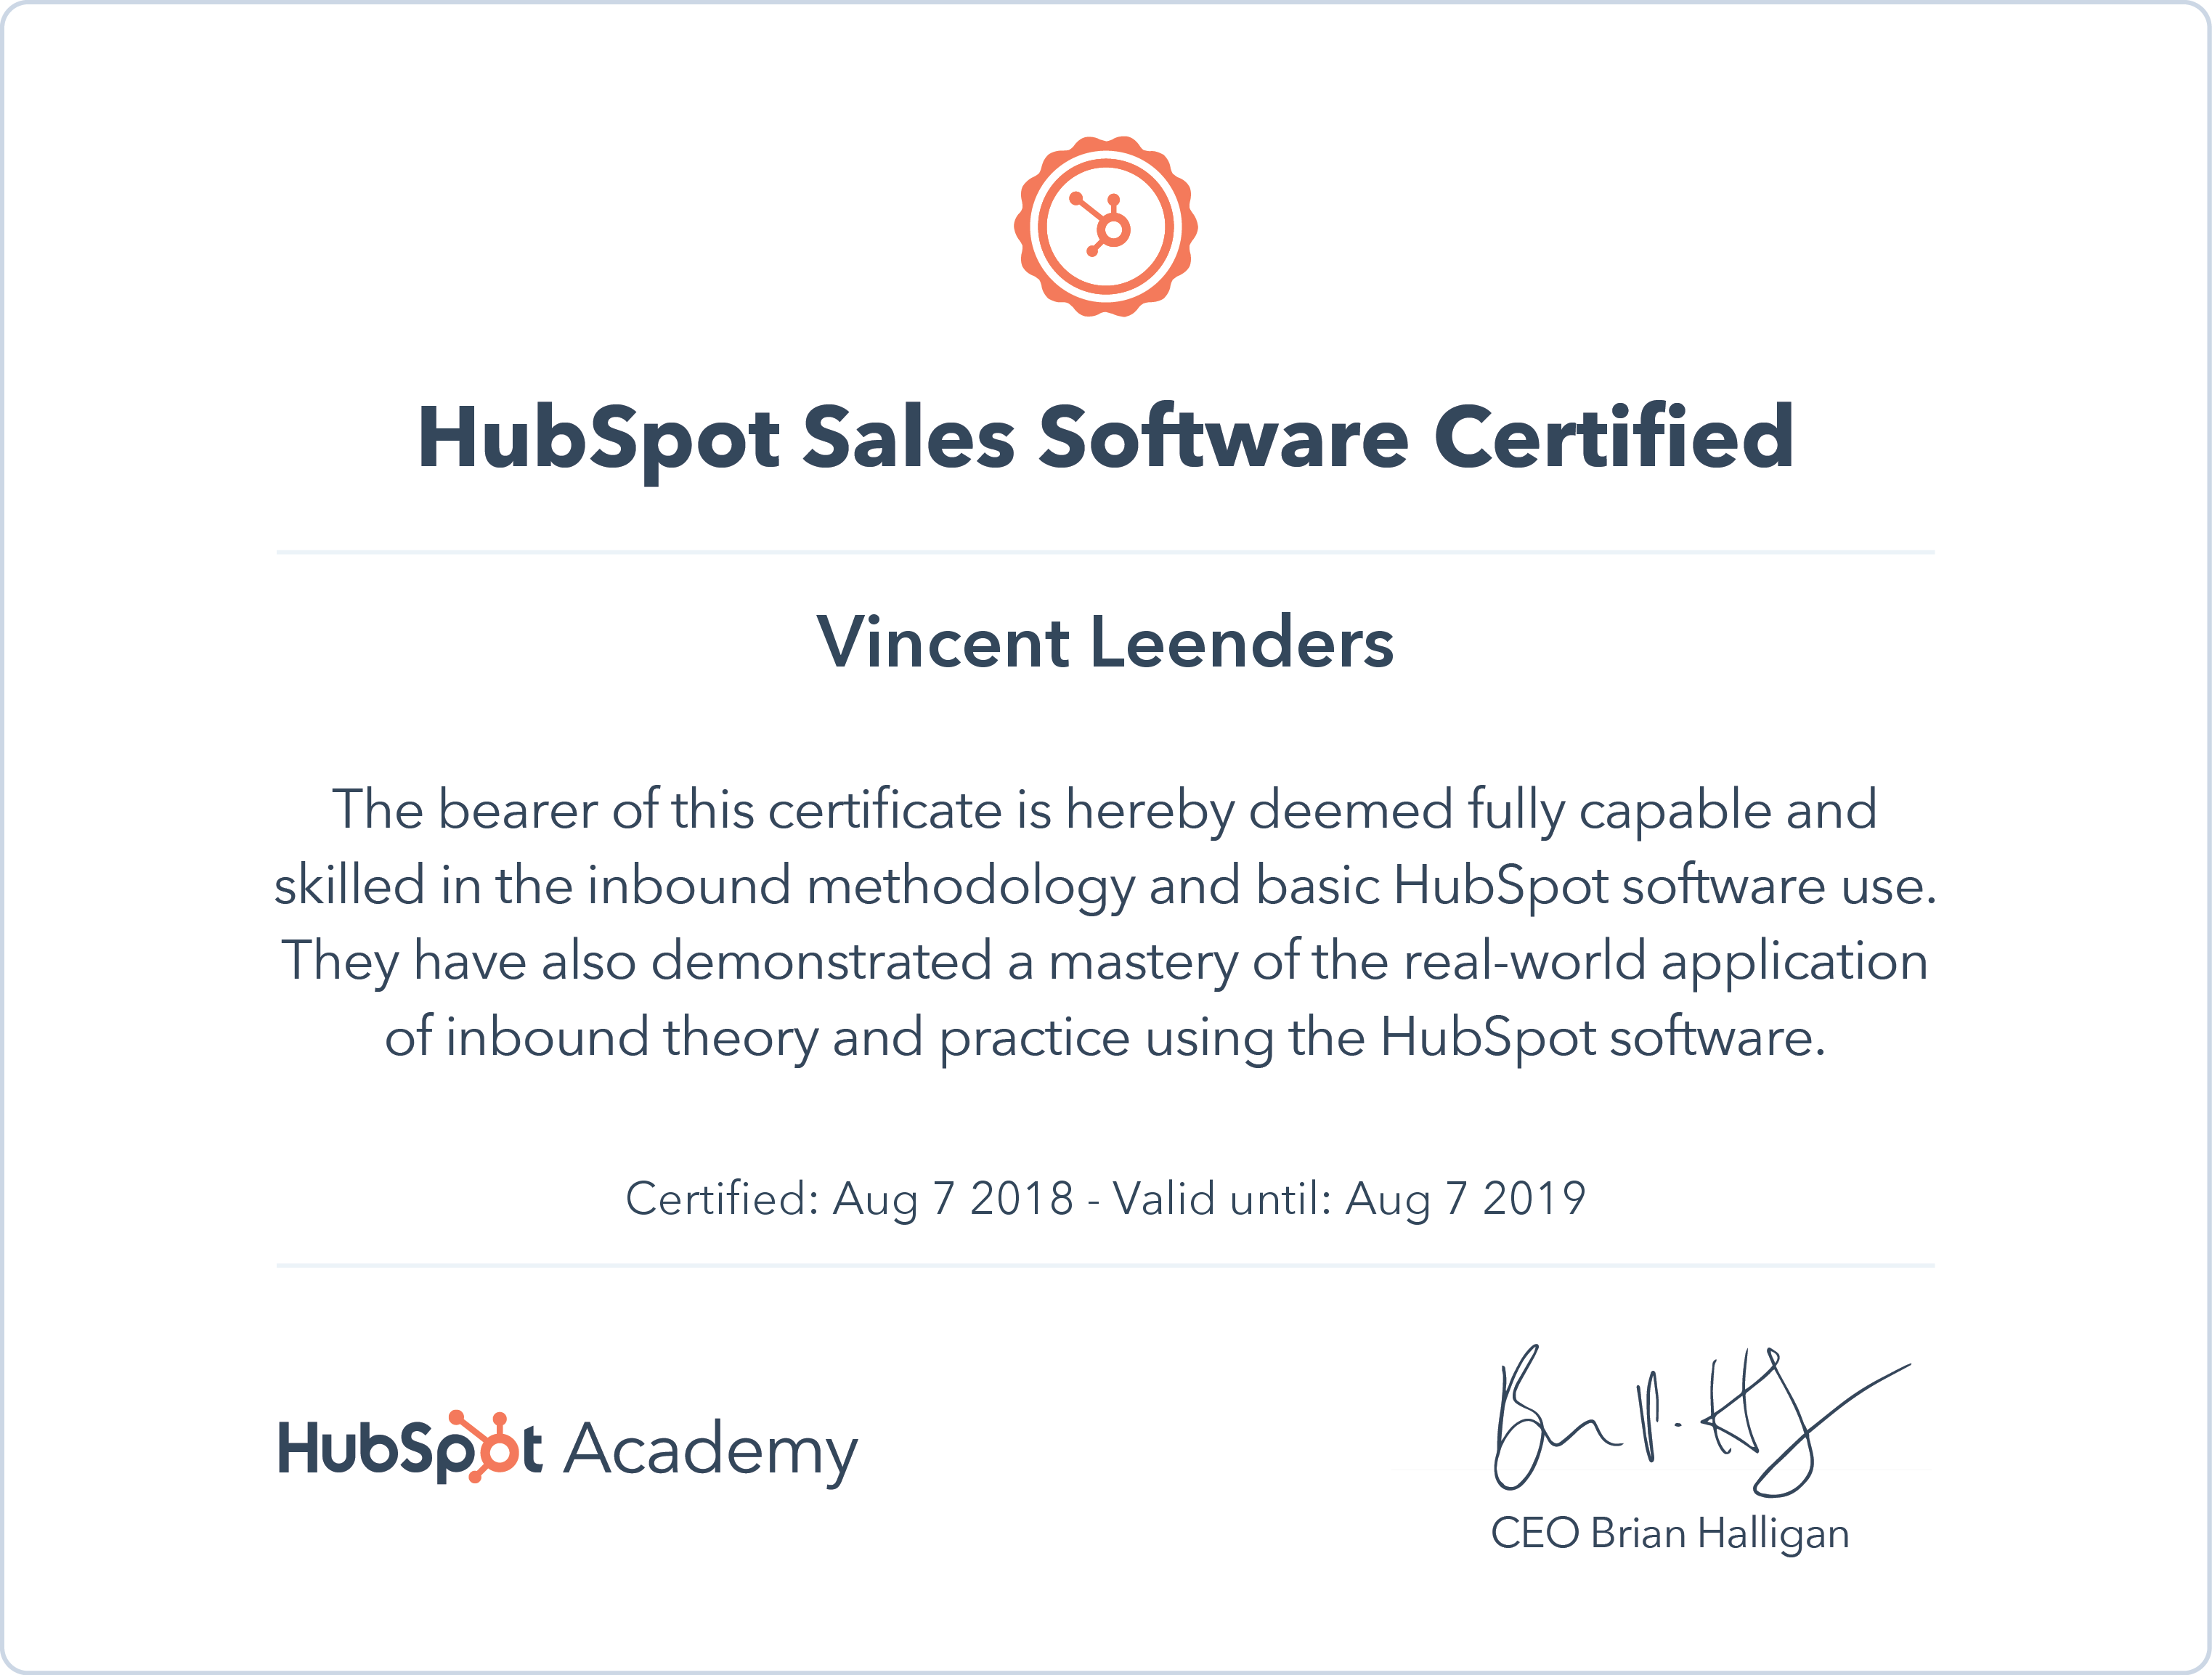 HubSpot-Sales_Software